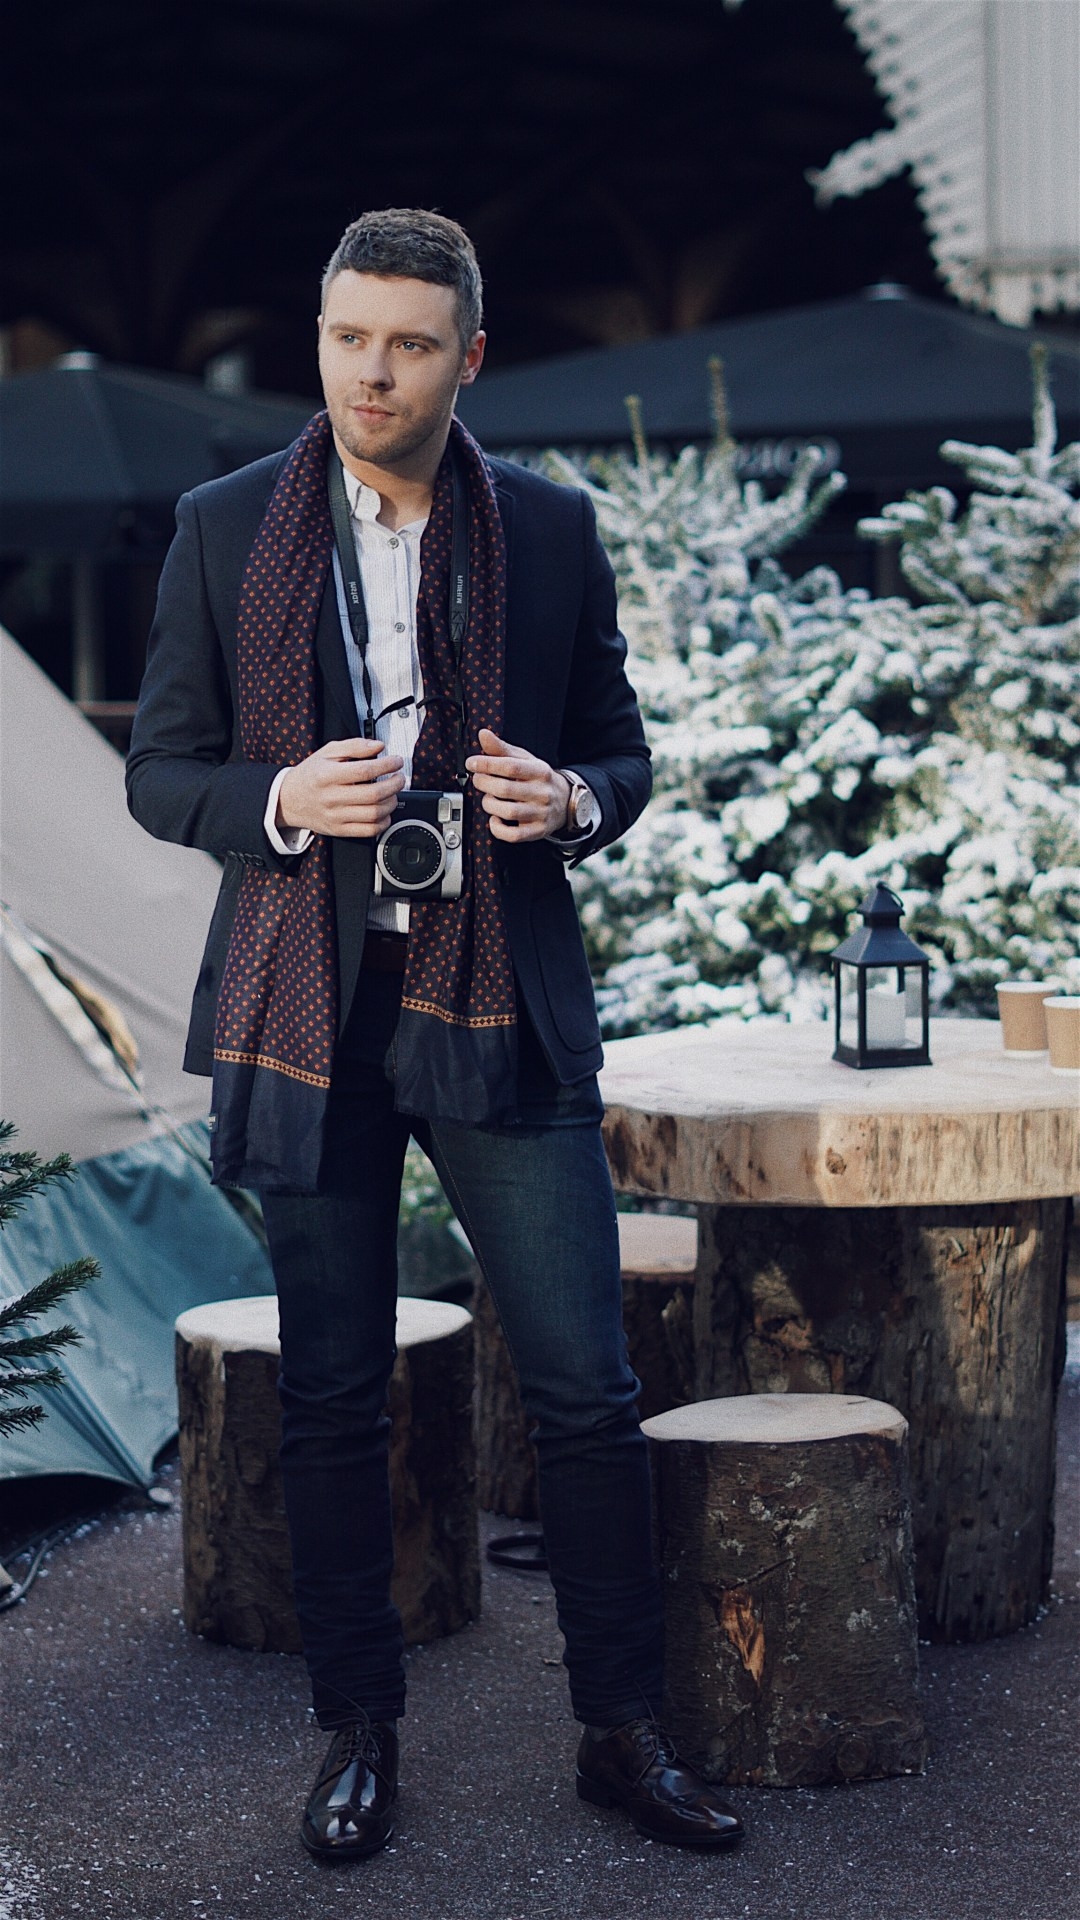 The Party Season at Debenhams. The Winter Forest at Broadgate. Wearing a navy textured single breasted wool blend jacket from J by Jasper Conran, navy geometric print dress scarf from Hammond & Co. by Patrick Grant, white striped print tailored fit shirt from The Collection, dark blue 'Bryson' skinny jeans from Wrangle, brown patent leather Derby shoes from Red Herring and Sekel Role Gold Watch With Silver Dial and Brown Leather Strap from Kronaby Sweden. Blog by Skirmantas Petraitis.